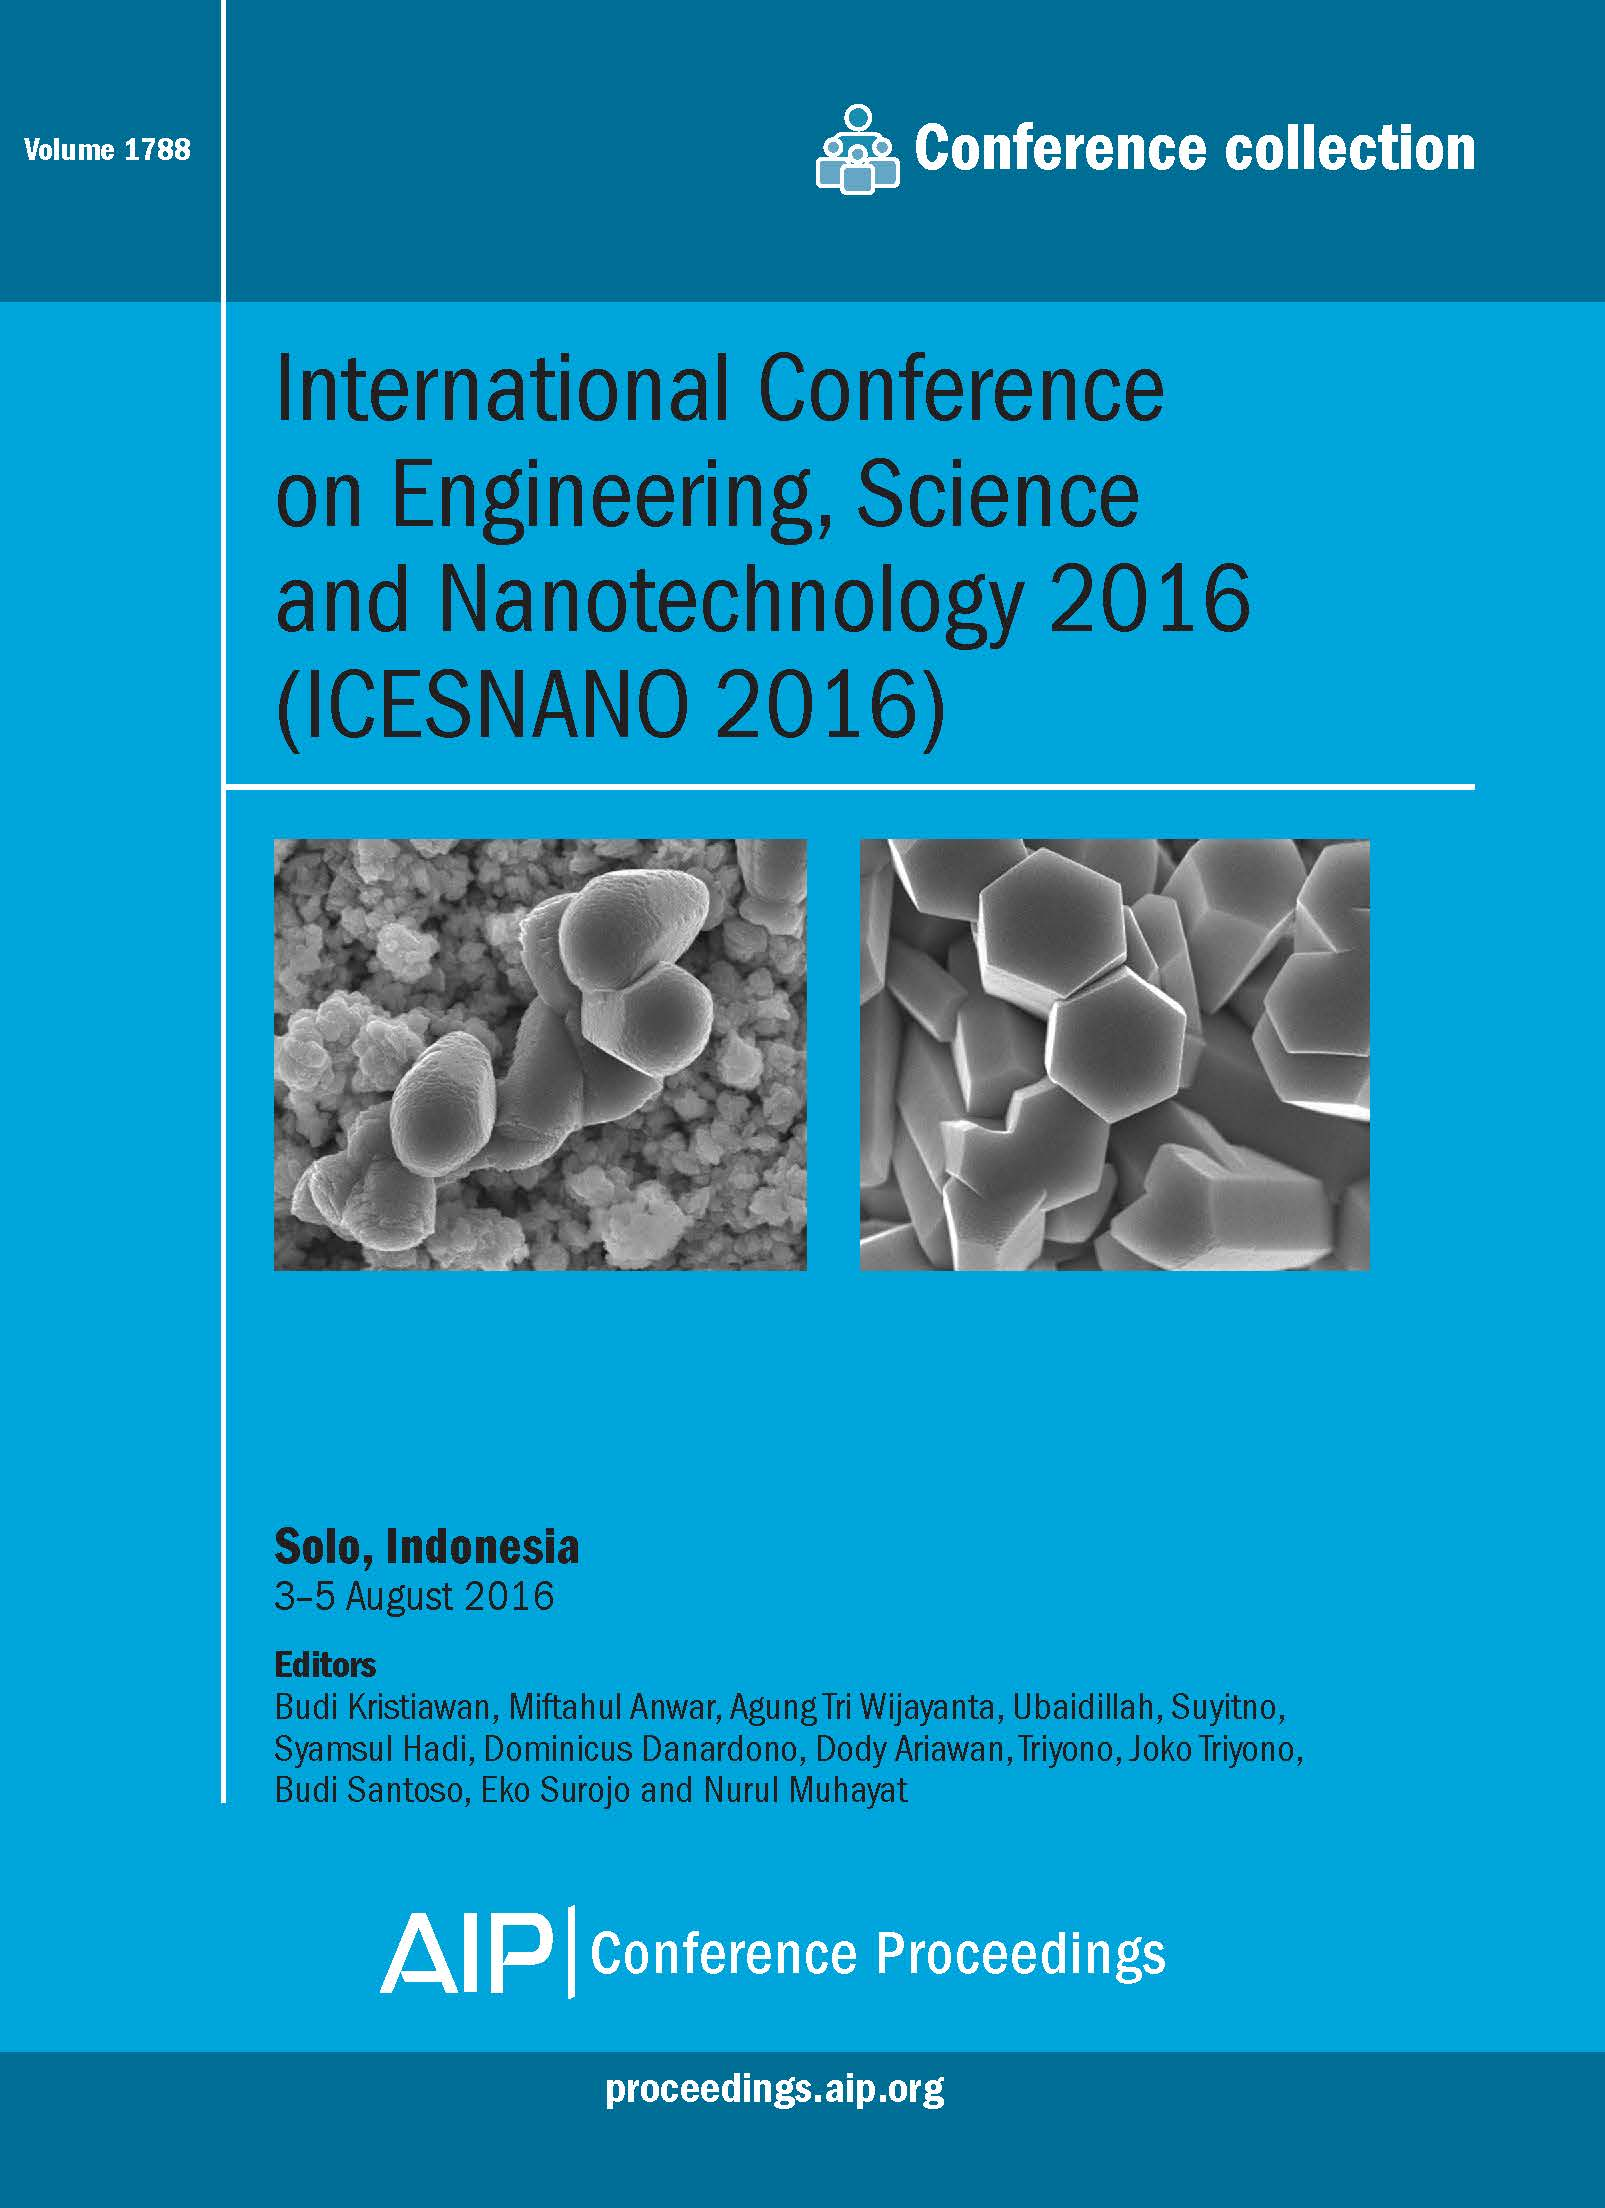 Volume 1788: International Conference on Engineering, Science and